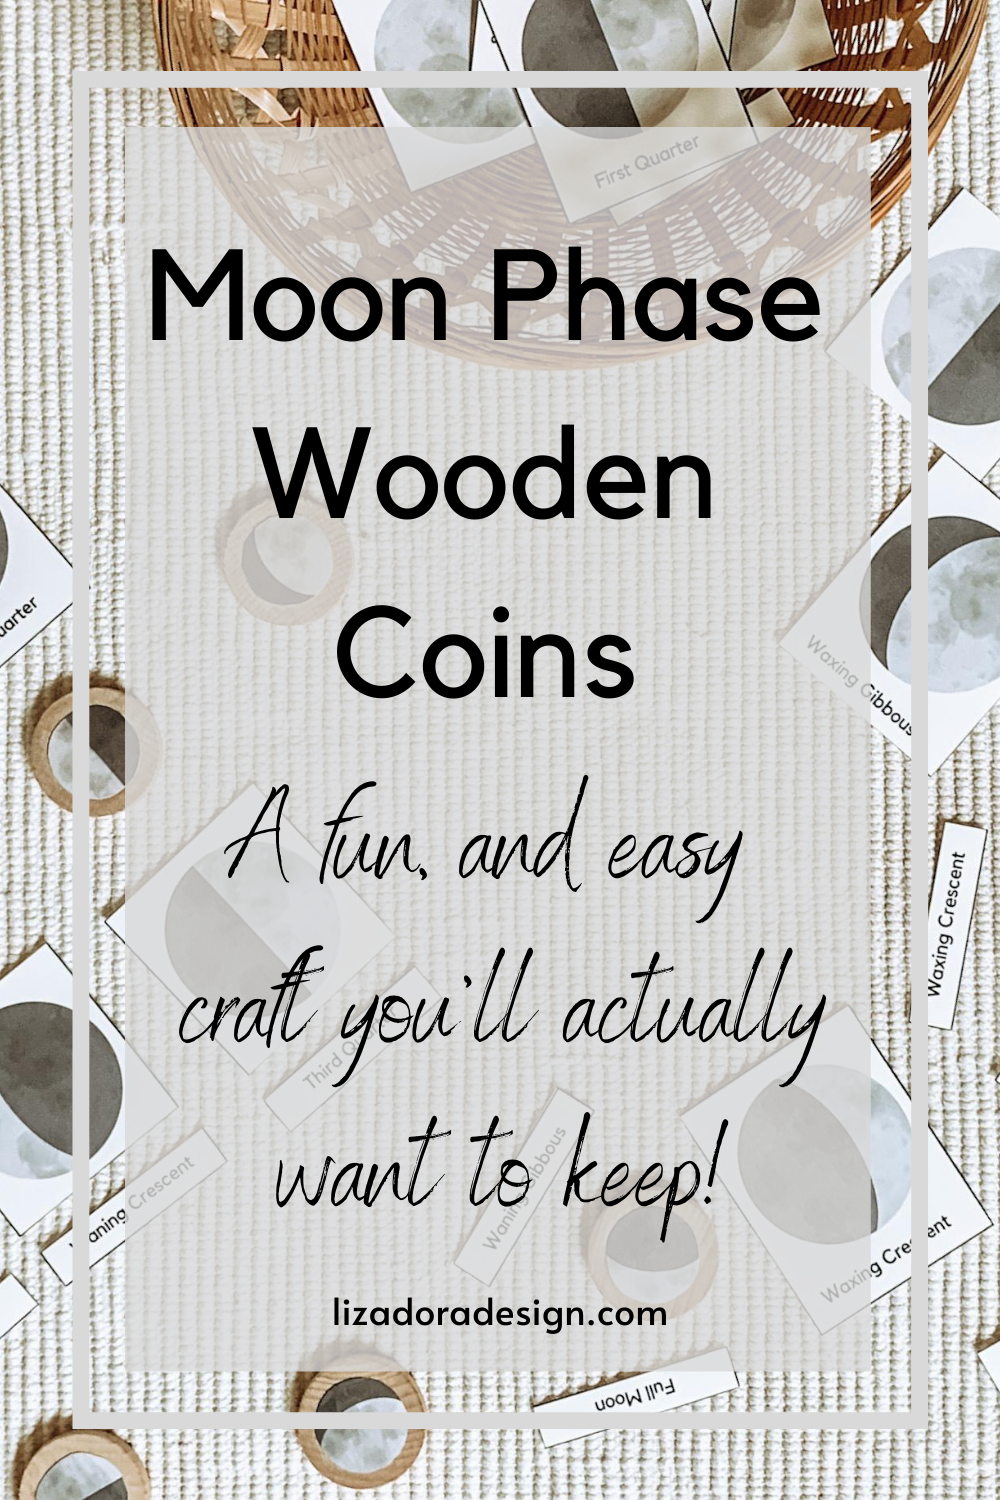 Diy Moon Phase Coins Moon Activities Moon Phases Moon Unit [ 1500 x 1000 Pixel ]